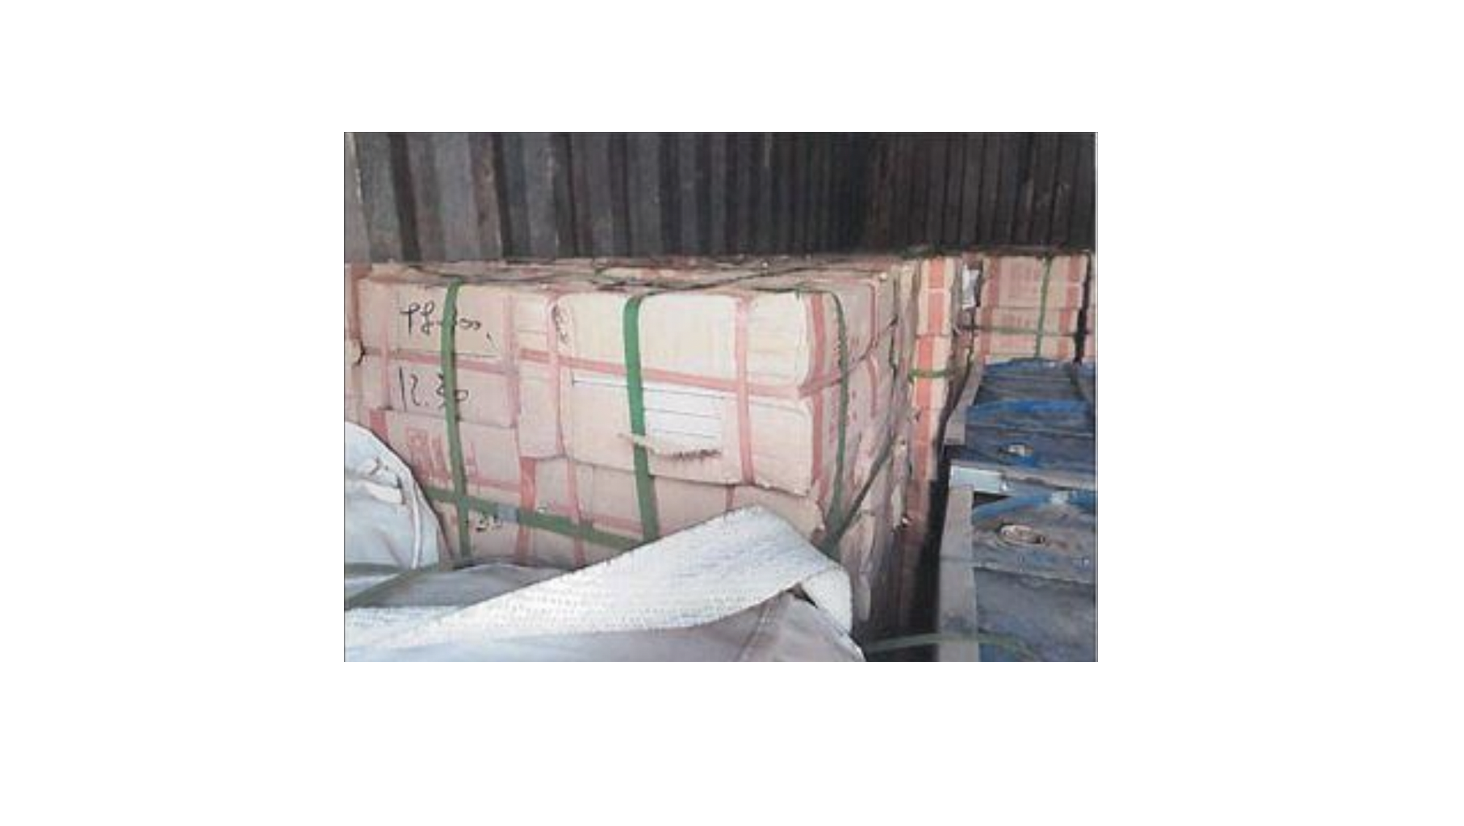 Acid-resistant tiles sent to the Mechanical Manufacturing Factory. Source:   UN Panel of Experts Report